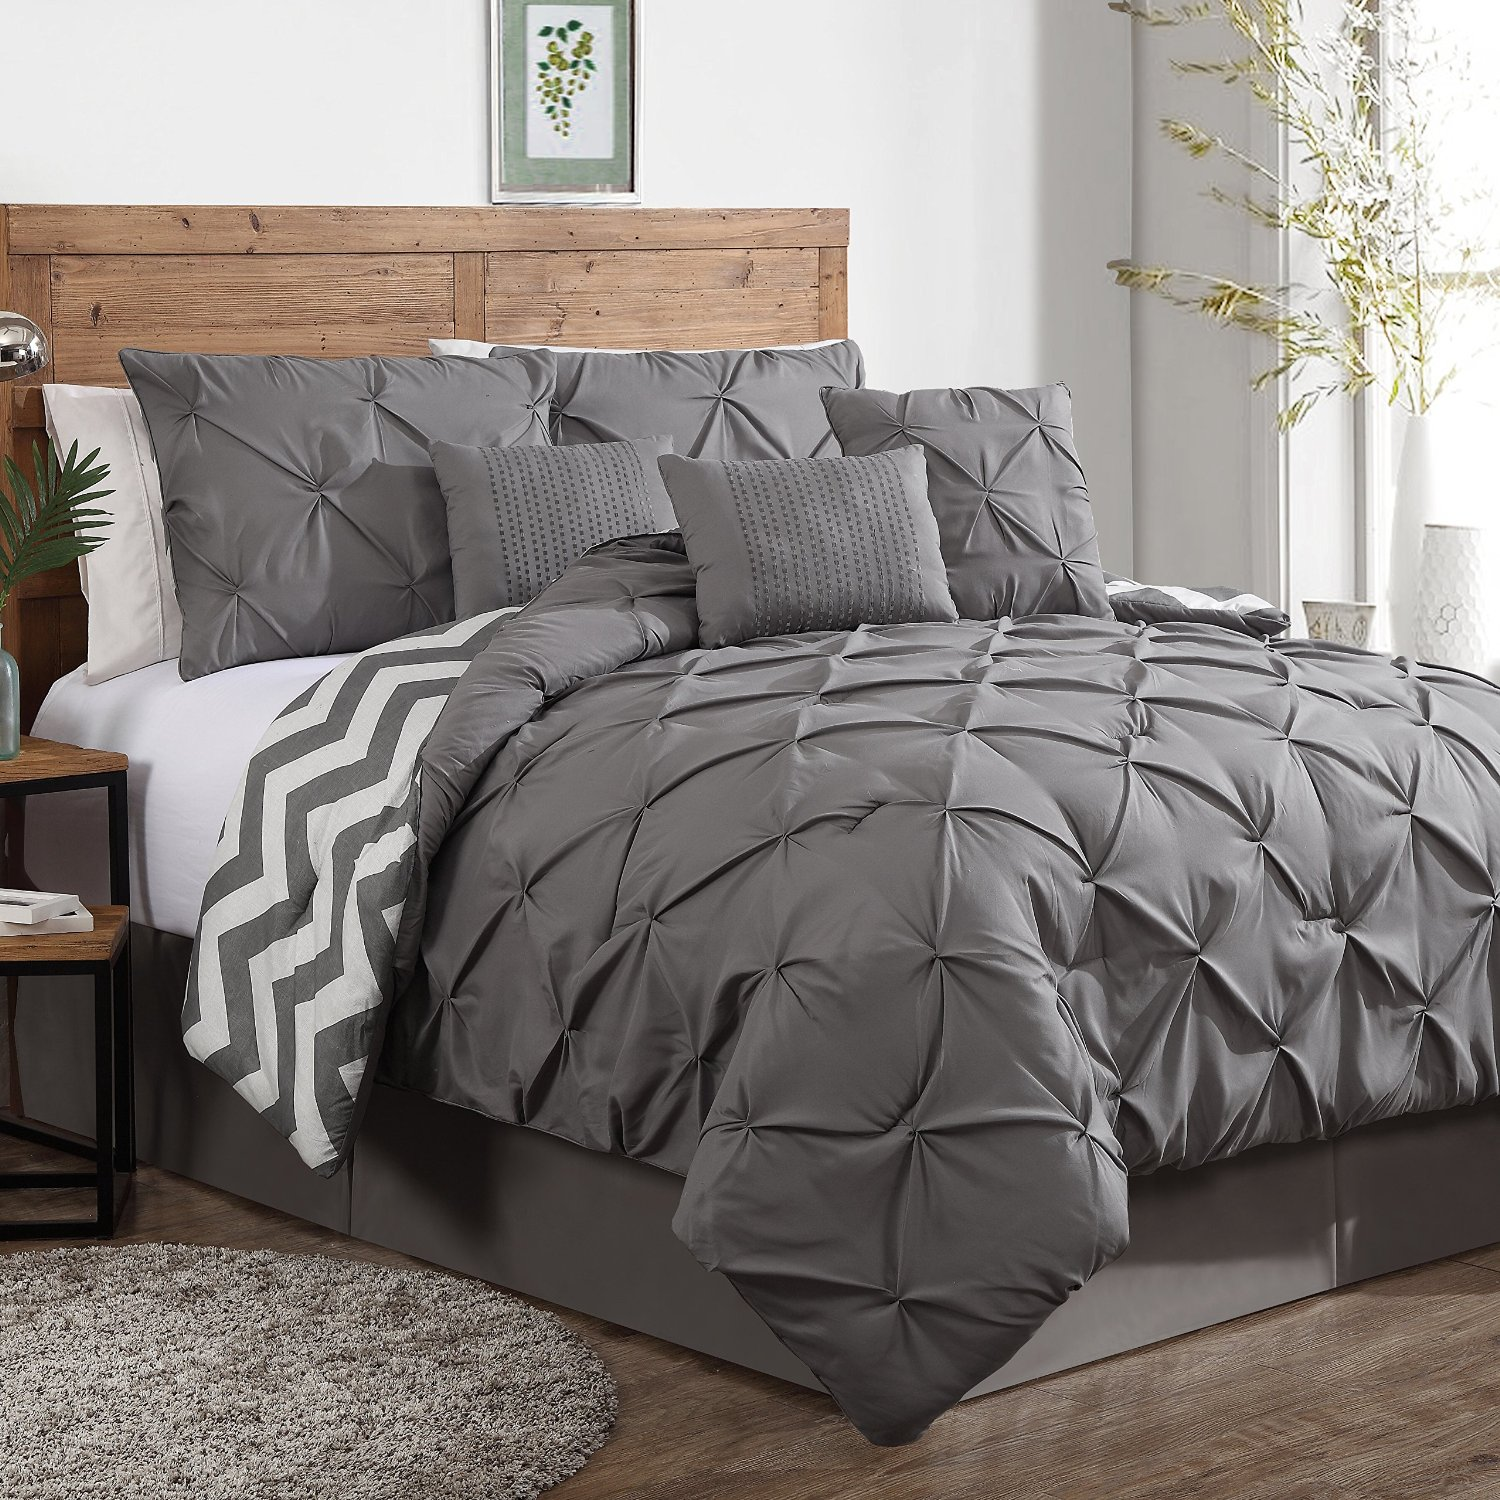 grey king size bedding ideas homesfeed. Black Bedroom Furniture Sets. Home Design Ideas